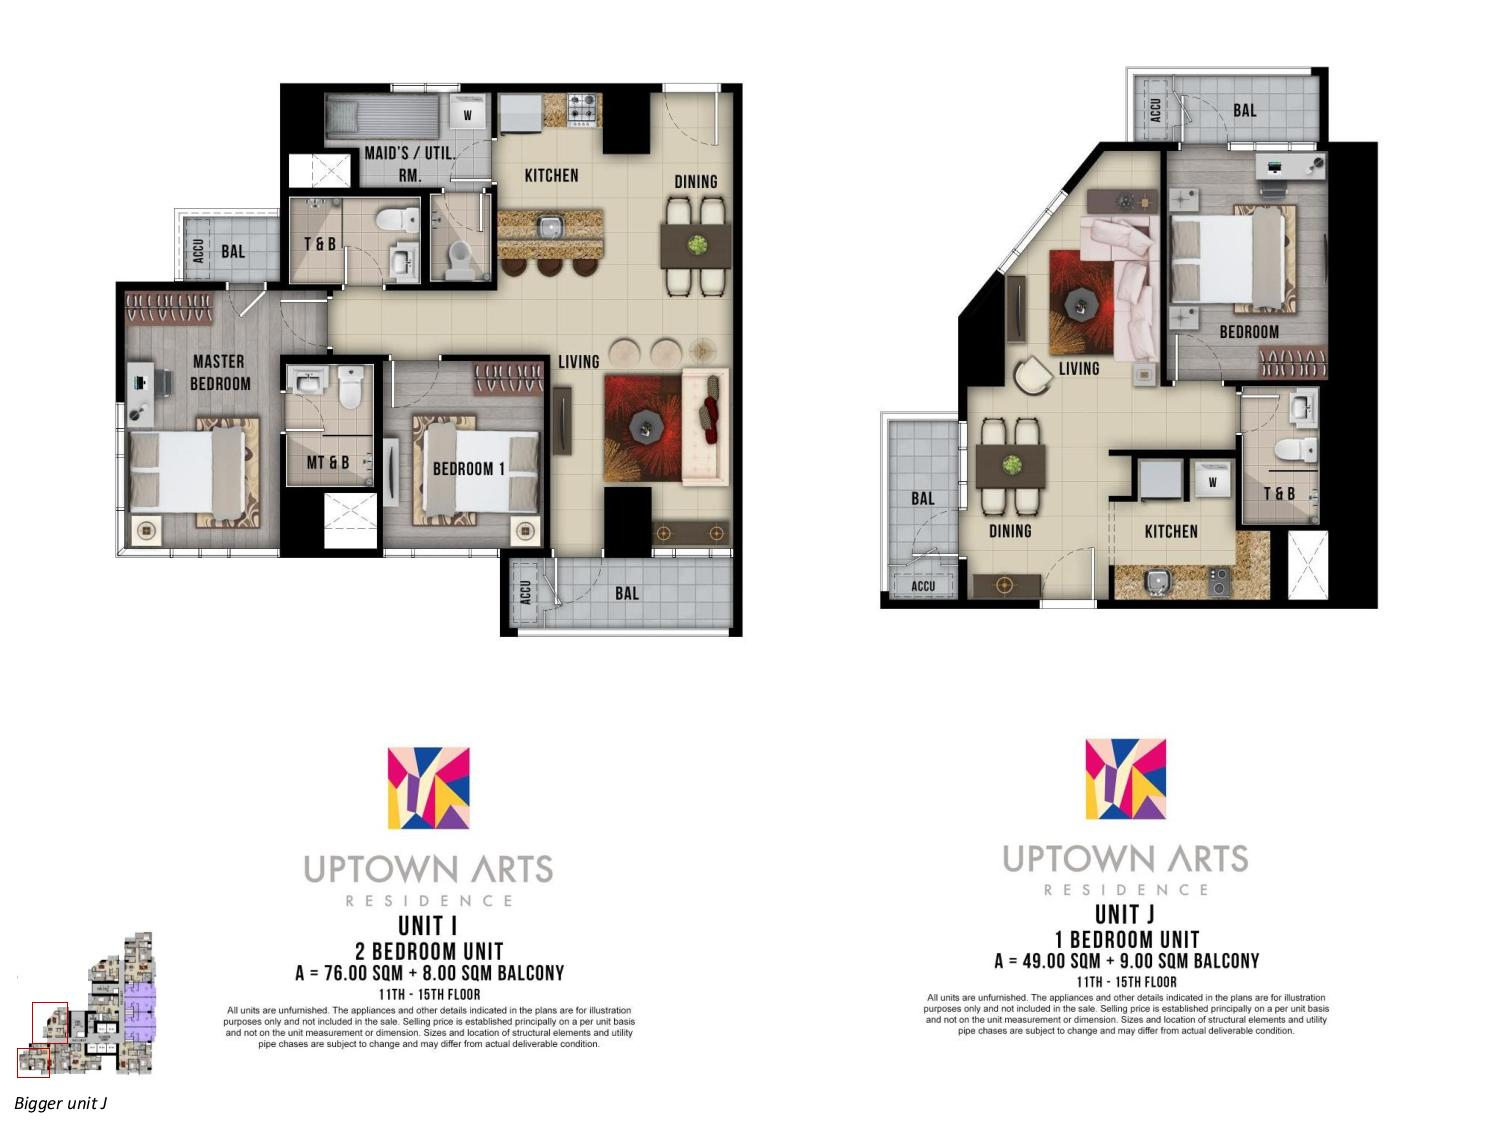 Two Bedroom Unit Layout Uptown Arts Residence  Preselling Condo For Sale in Bonifacio Global City BGC